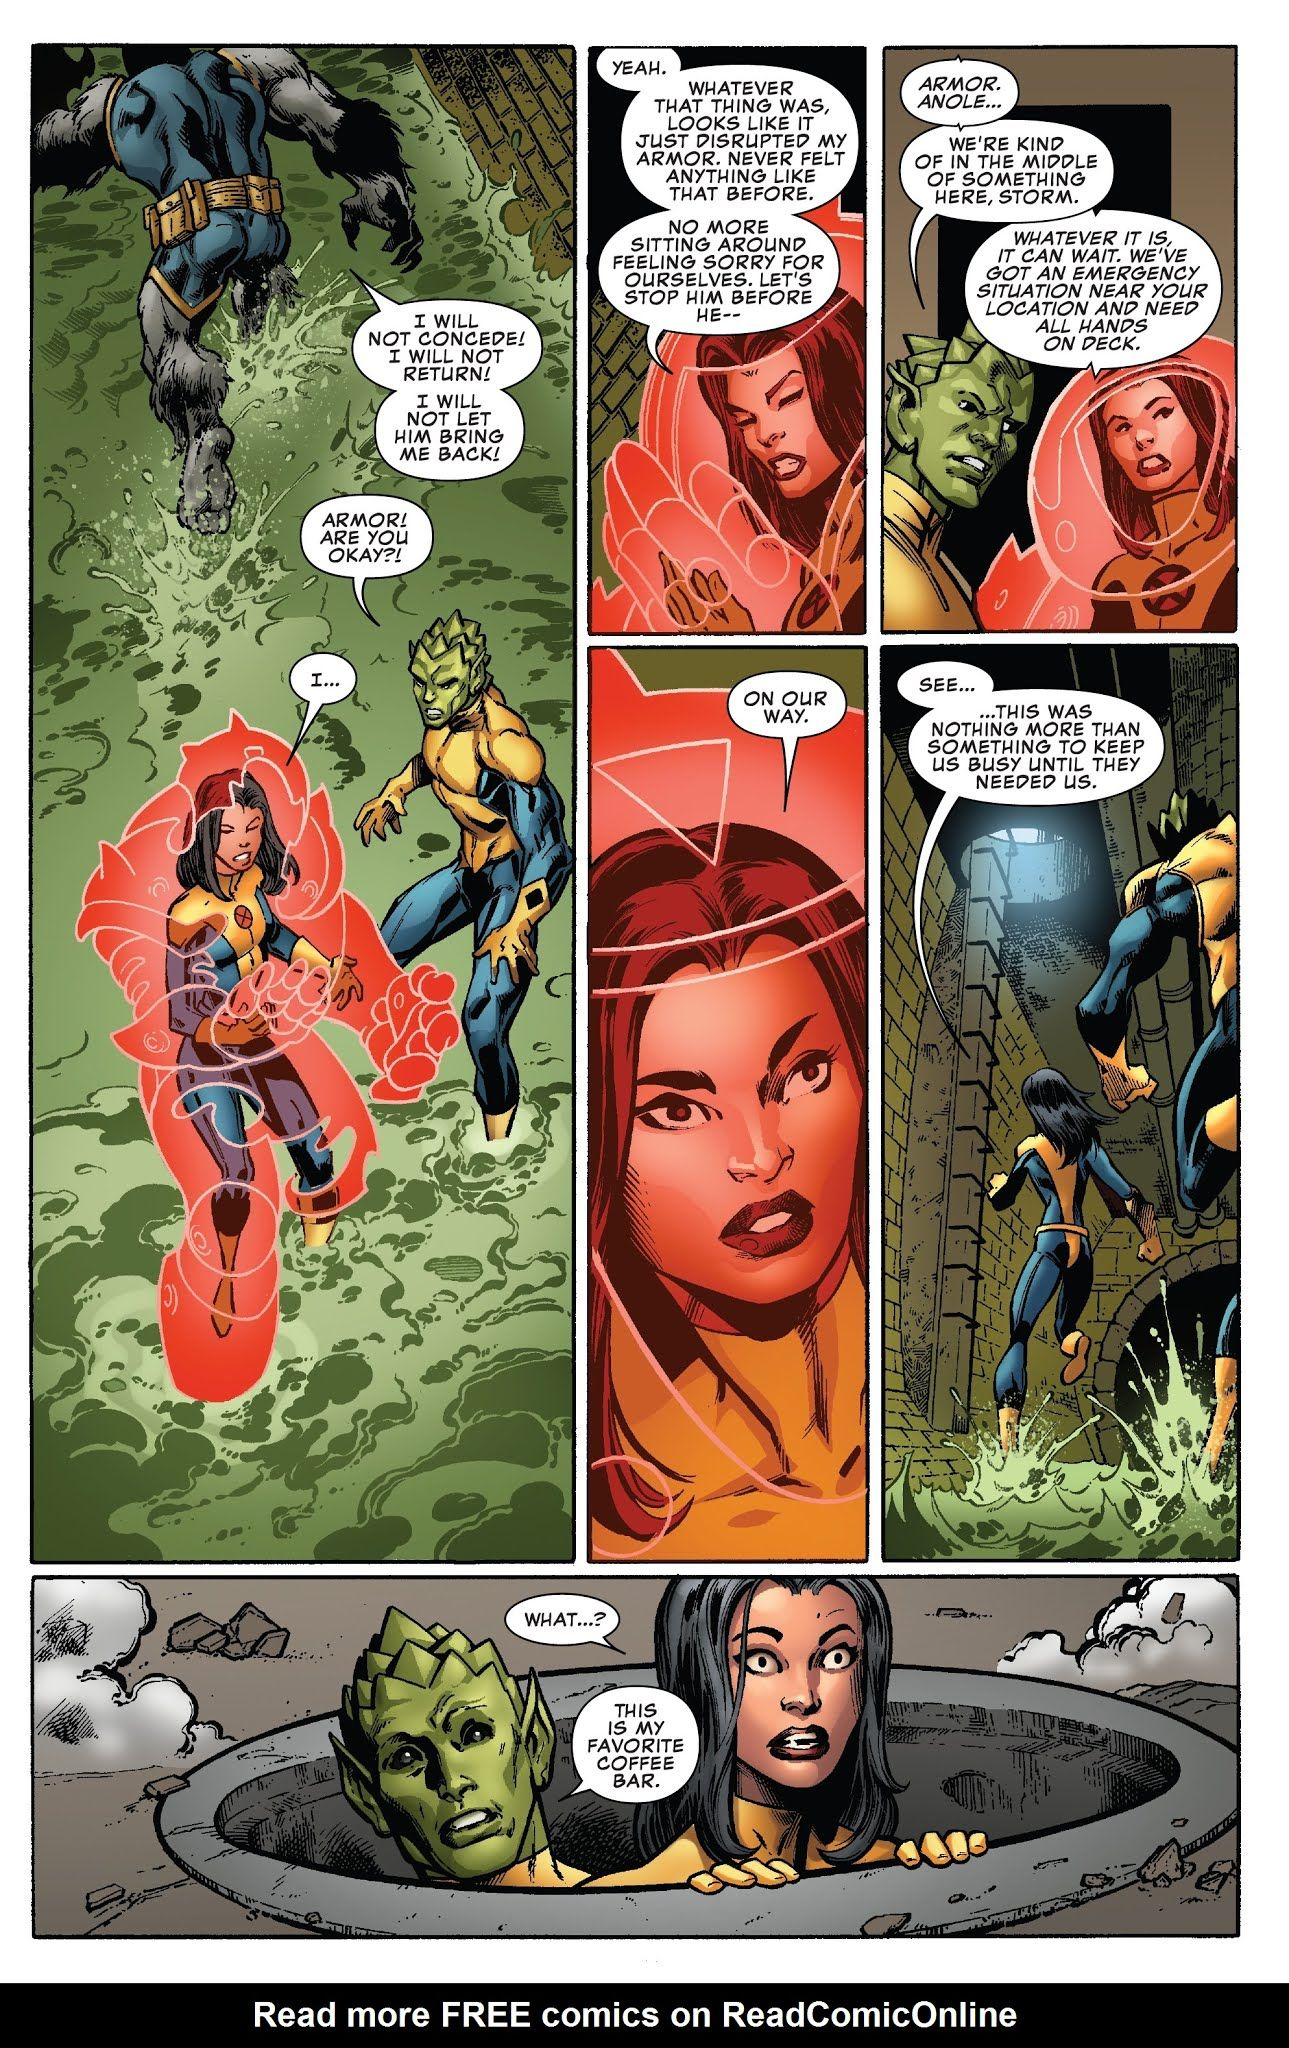 Uncanny X Men 2019 Issue 1 Read Uncanny X Men 2019 Issue 1 Comic Online In High Quality Hering